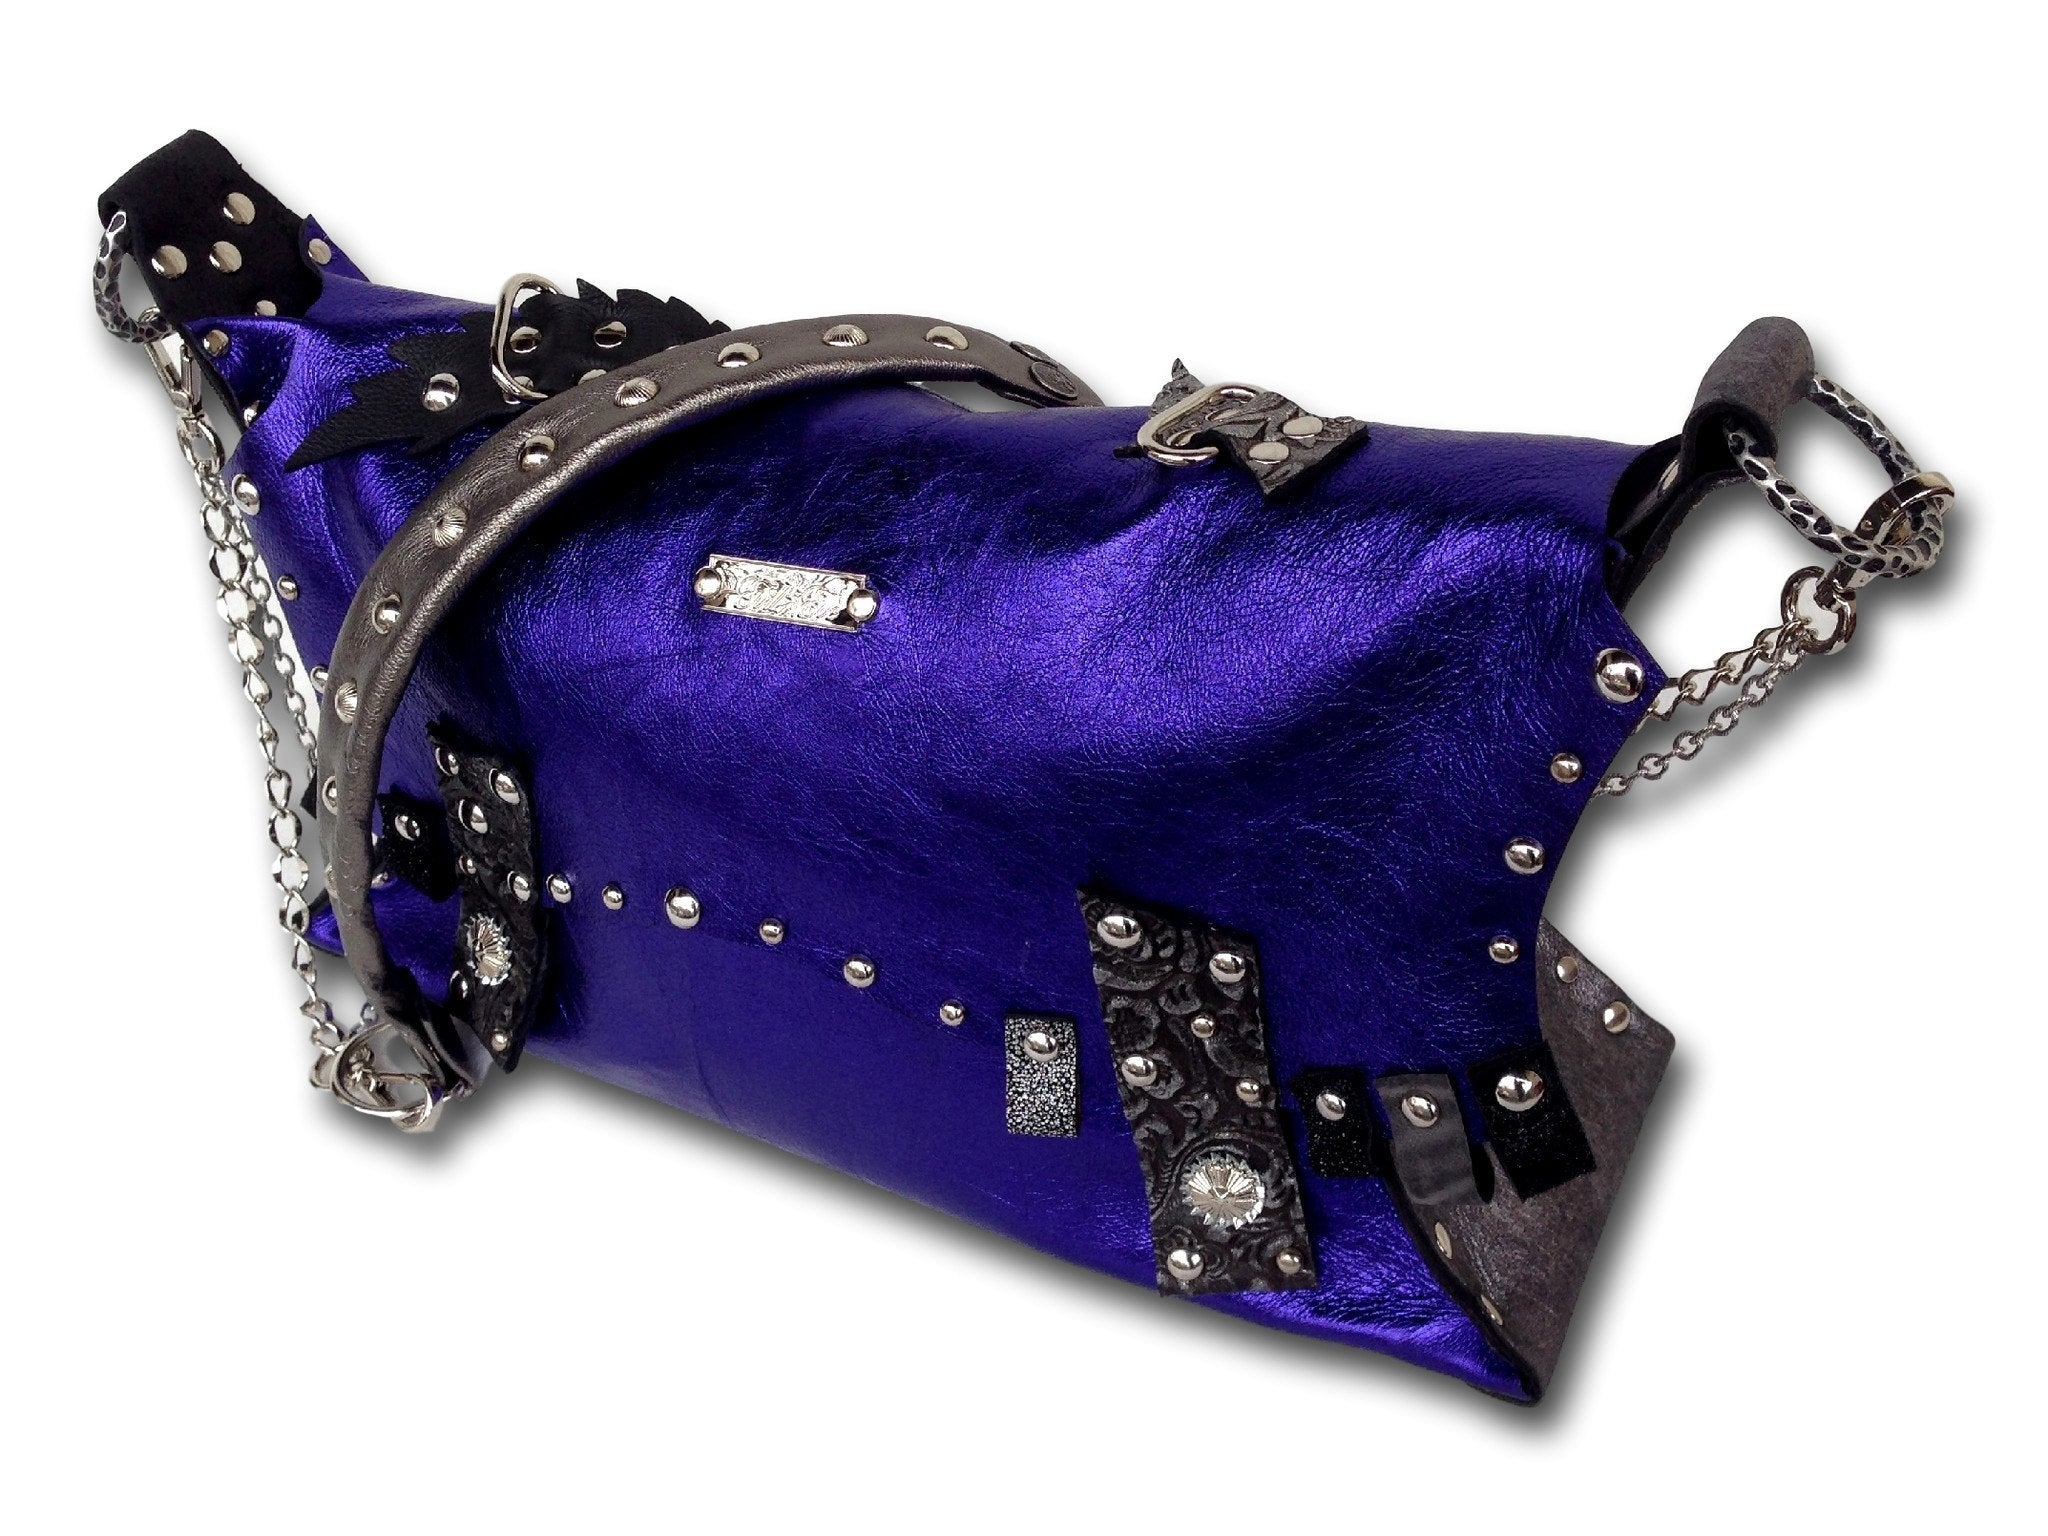 Handmade leather bag (purple)